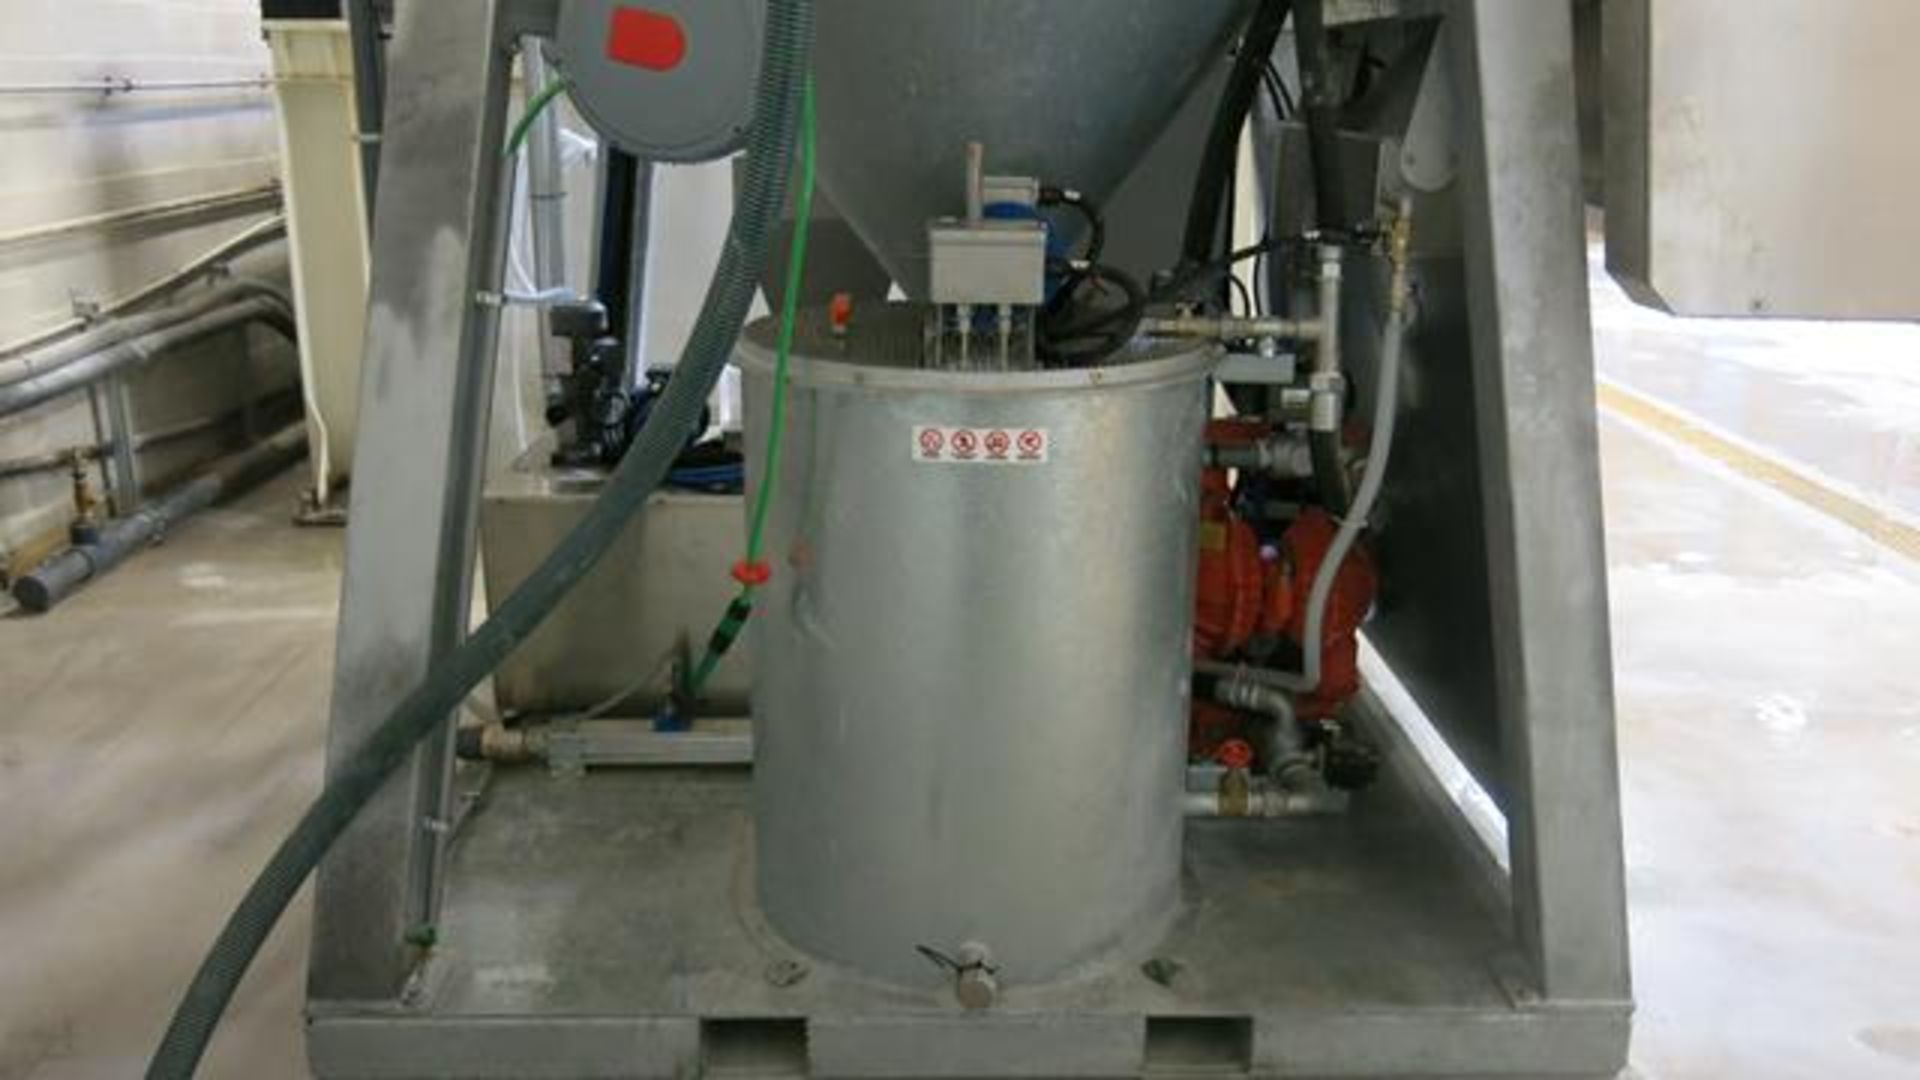 Lot 903 - DAL PRETE, MINI COMPACT 3.0, WASTEWATER TREATMENT SYSTEM, S/N 121-19, 2019